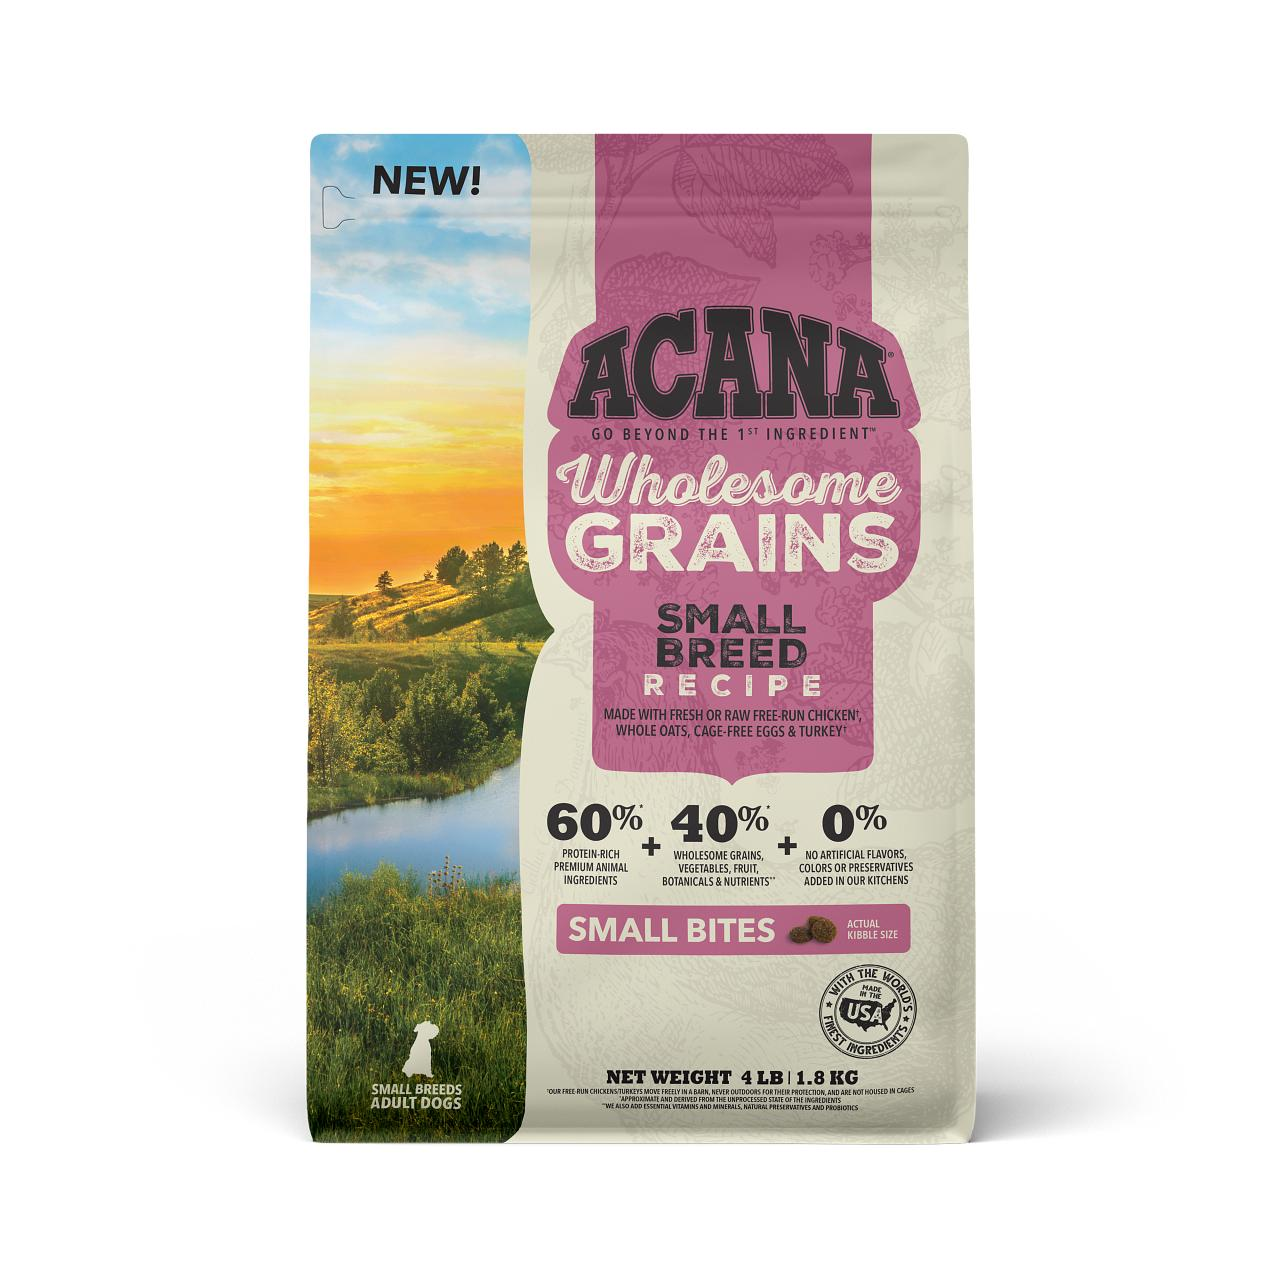 ACANA Wholesome Grains Small Breed Recipe Dry Dog Food, 4-lb